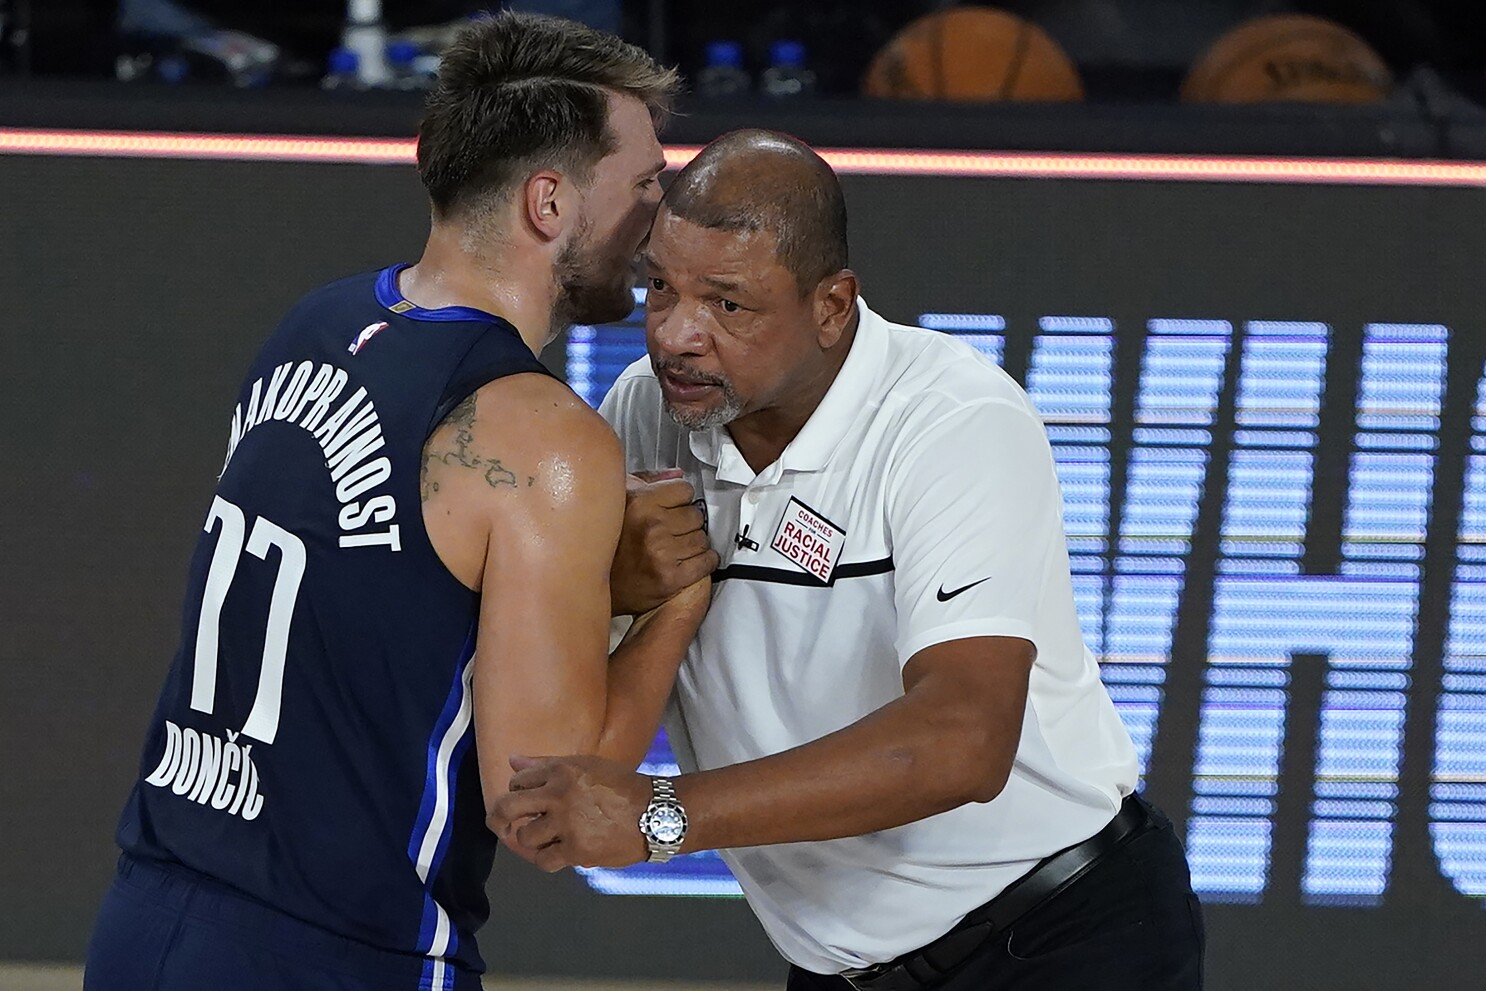 Nba Playoffs Clippers Are Answer For Mavericks Luka Doncic Los Angeles Times